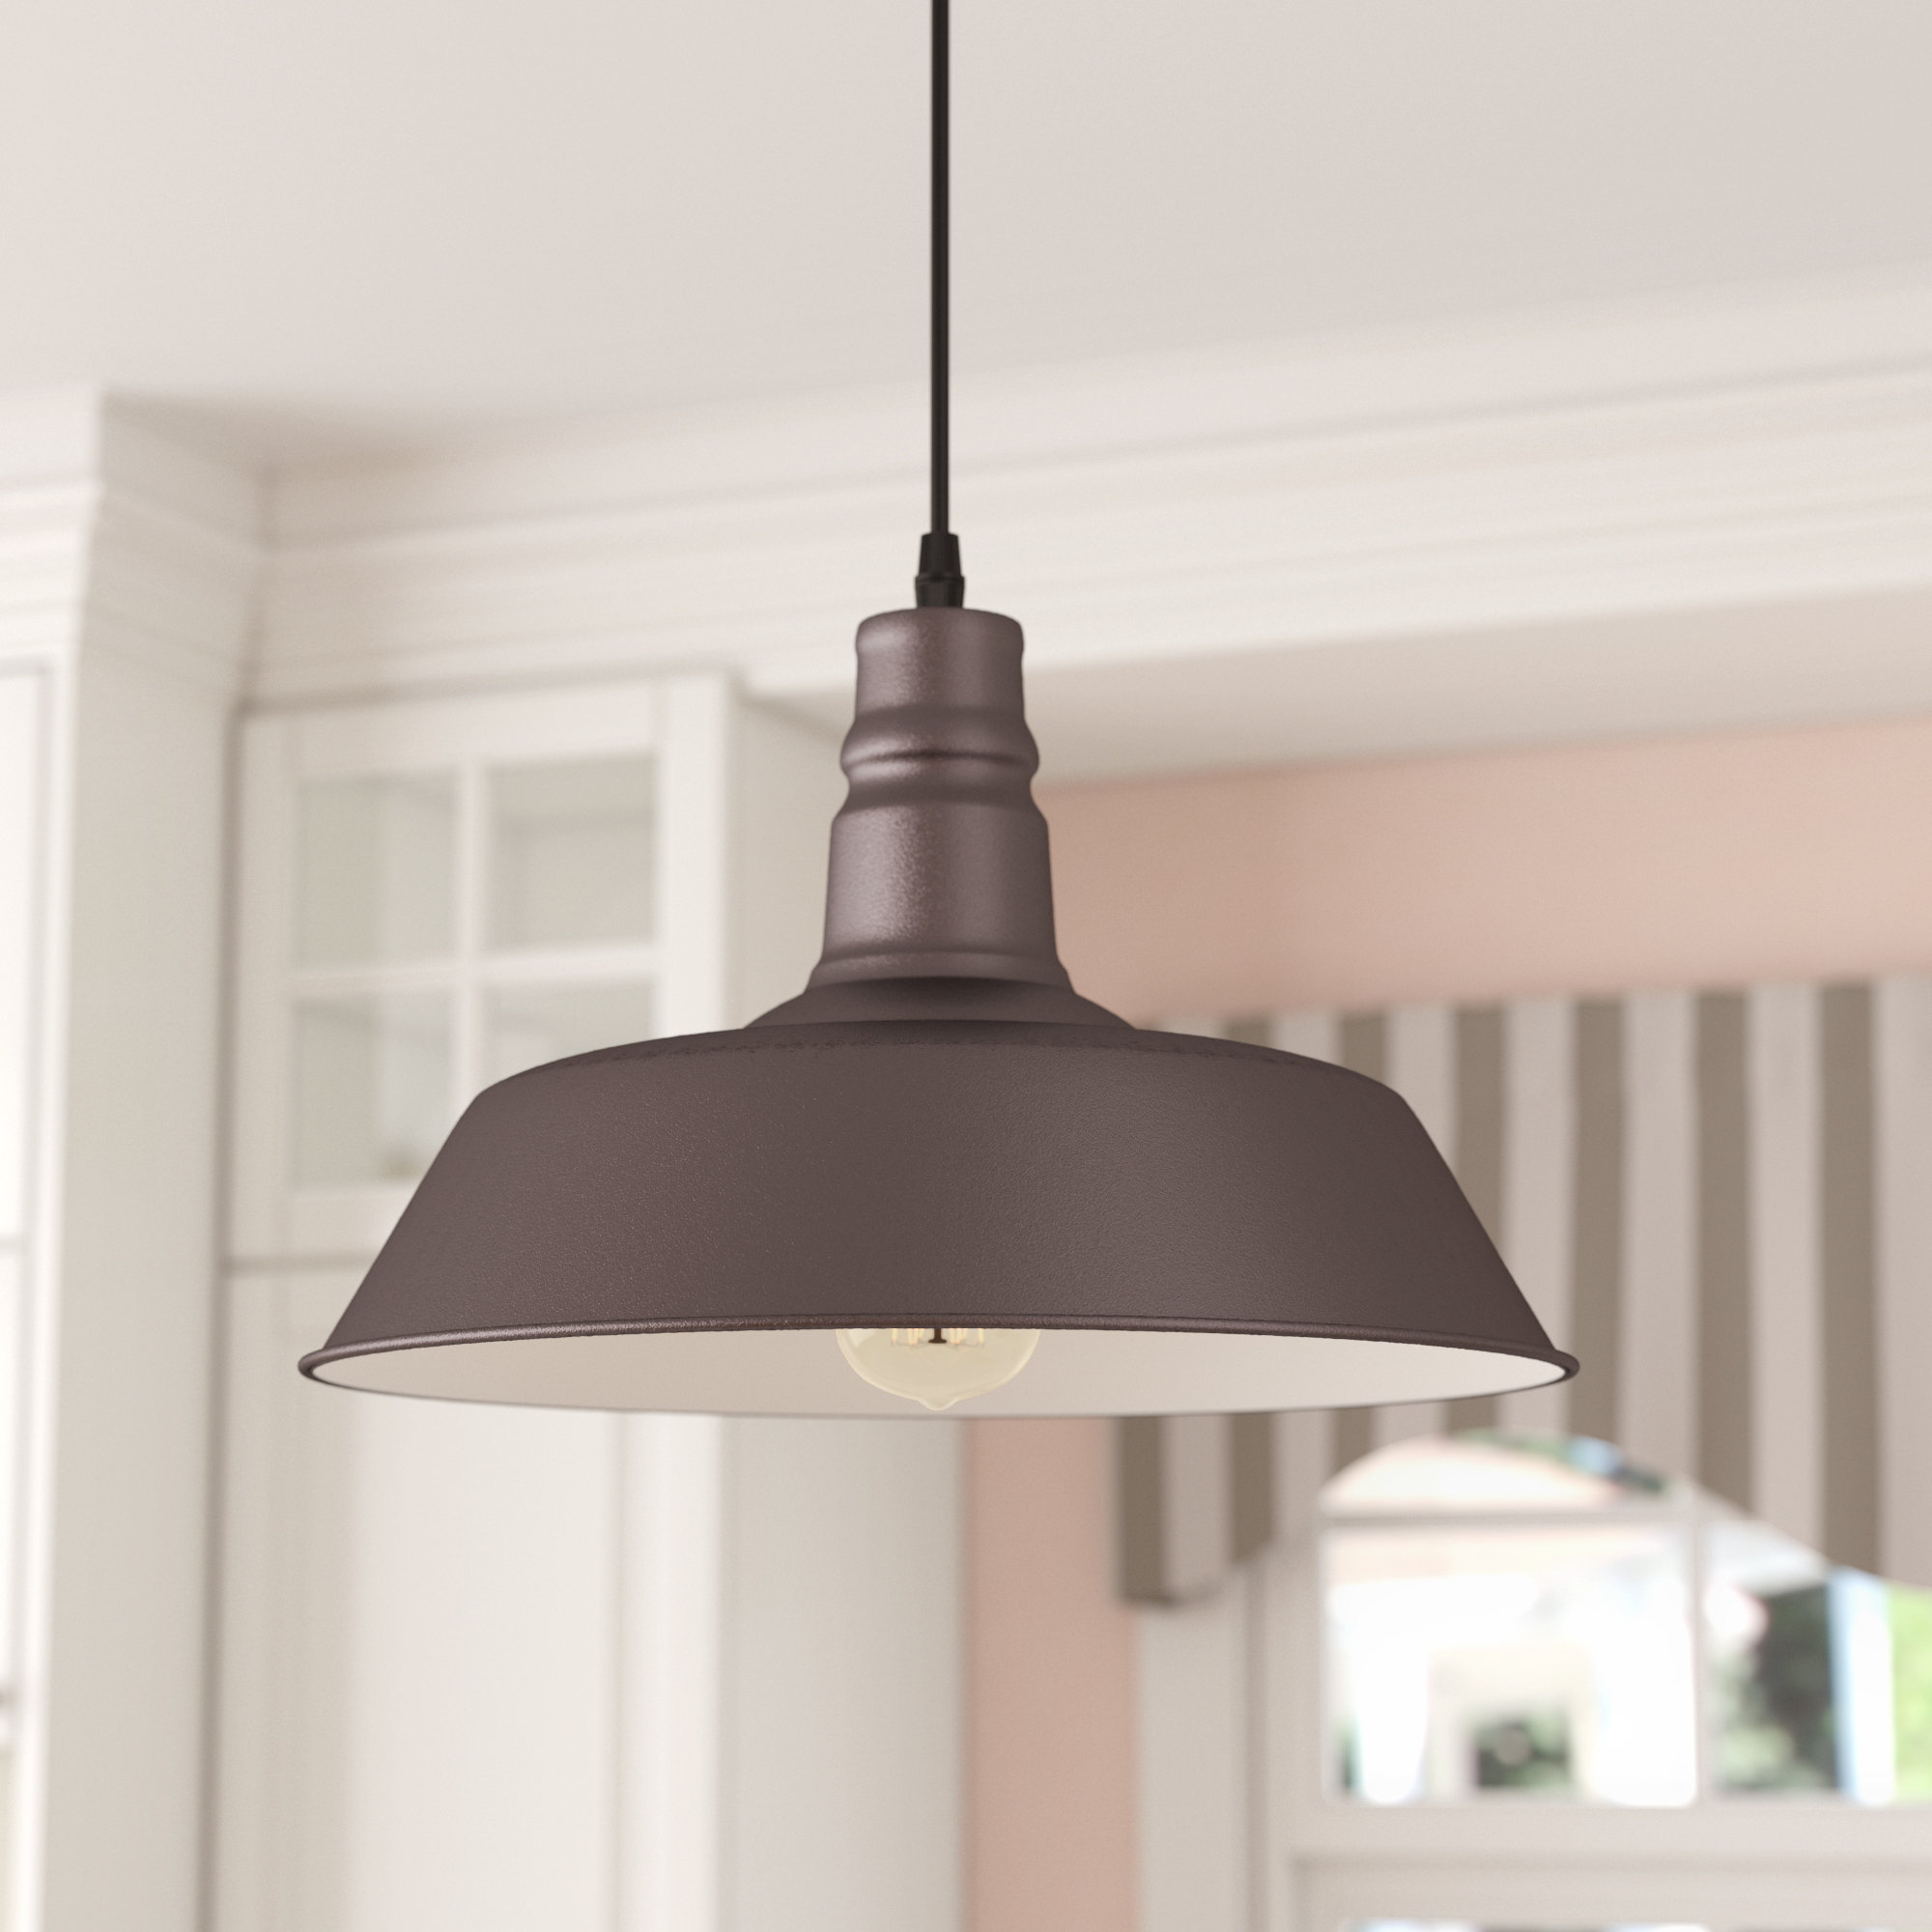 Adriana Black 1 Light Single Dome Pendants With Regard To Best And Newest Bouvet 1 Light Dome Pendant (View 16 of 20)